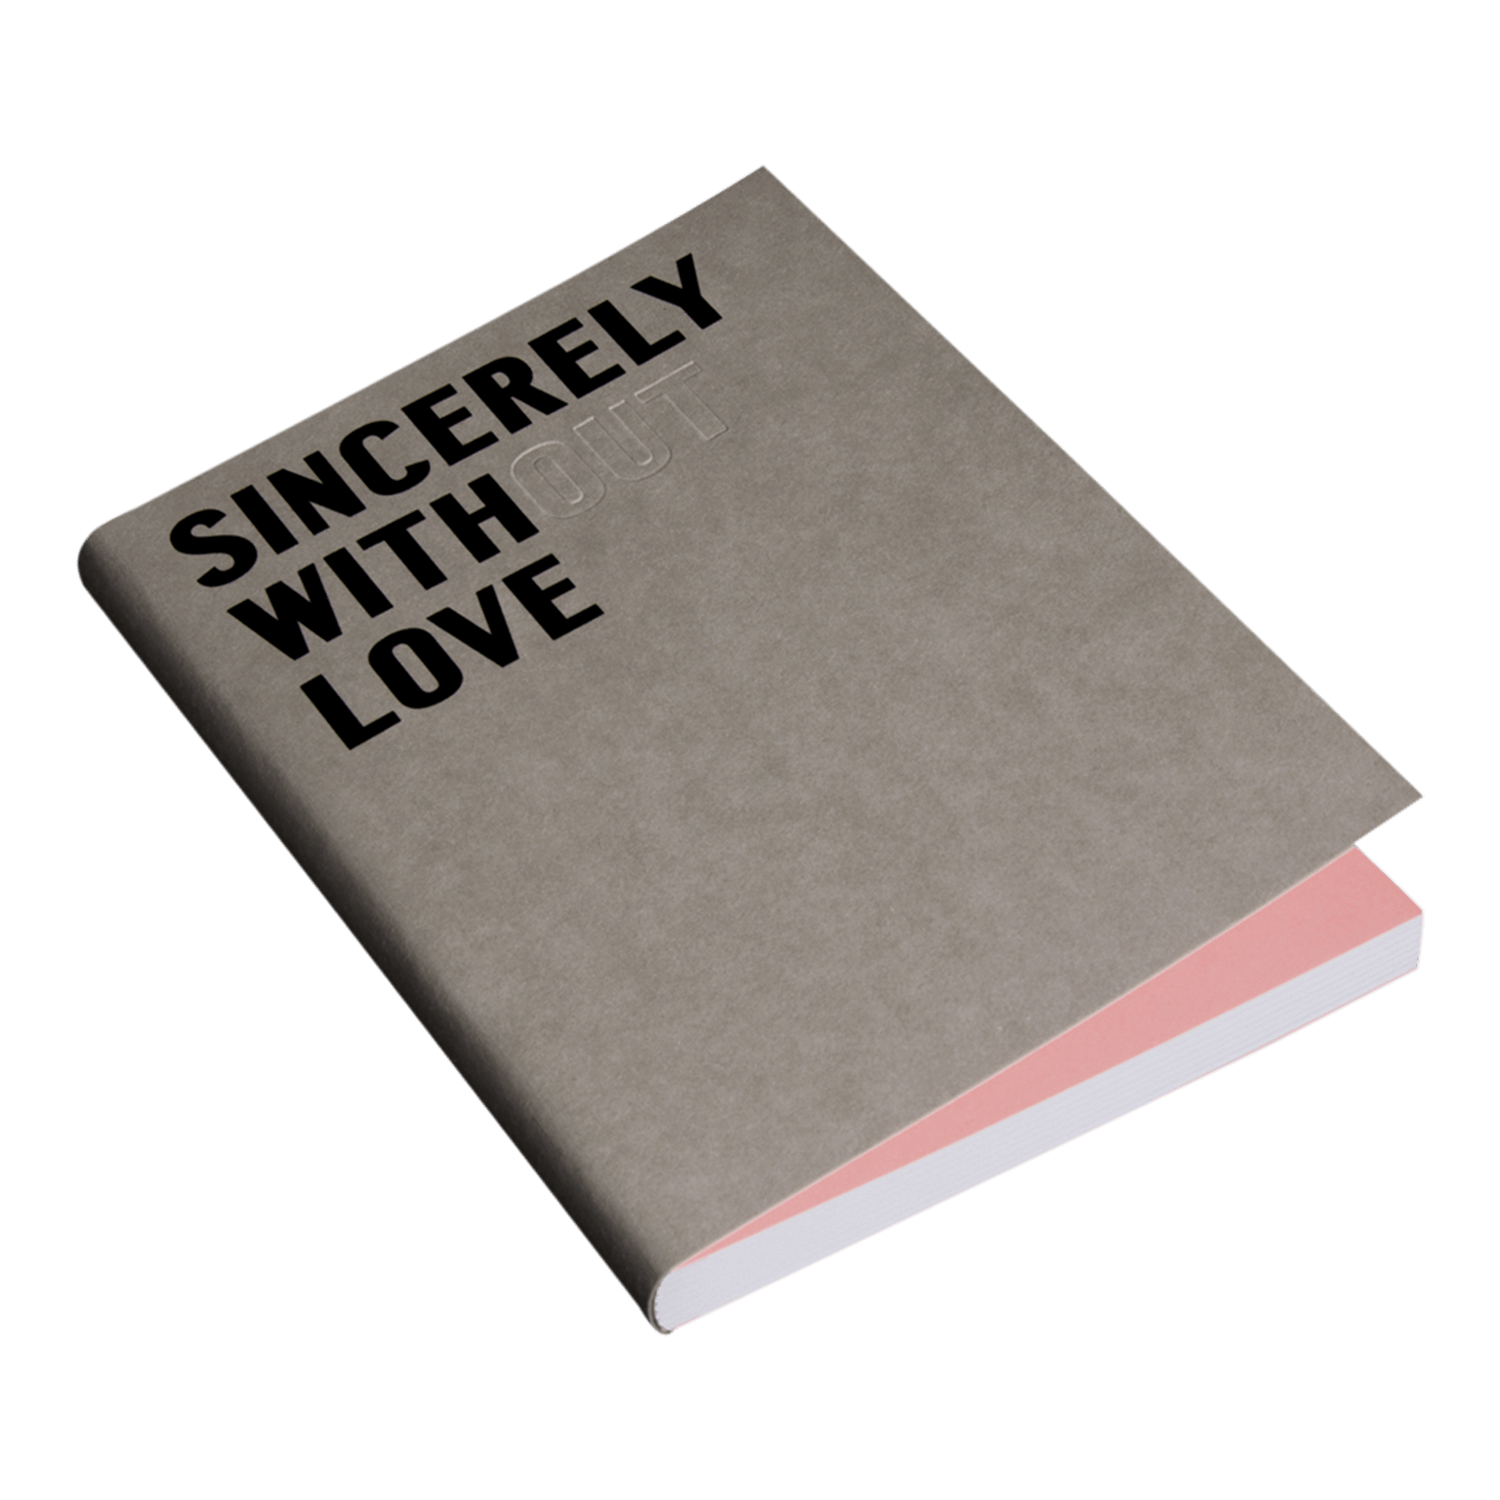 Happily Ever Paper Fill Notebook Sincerely With Love